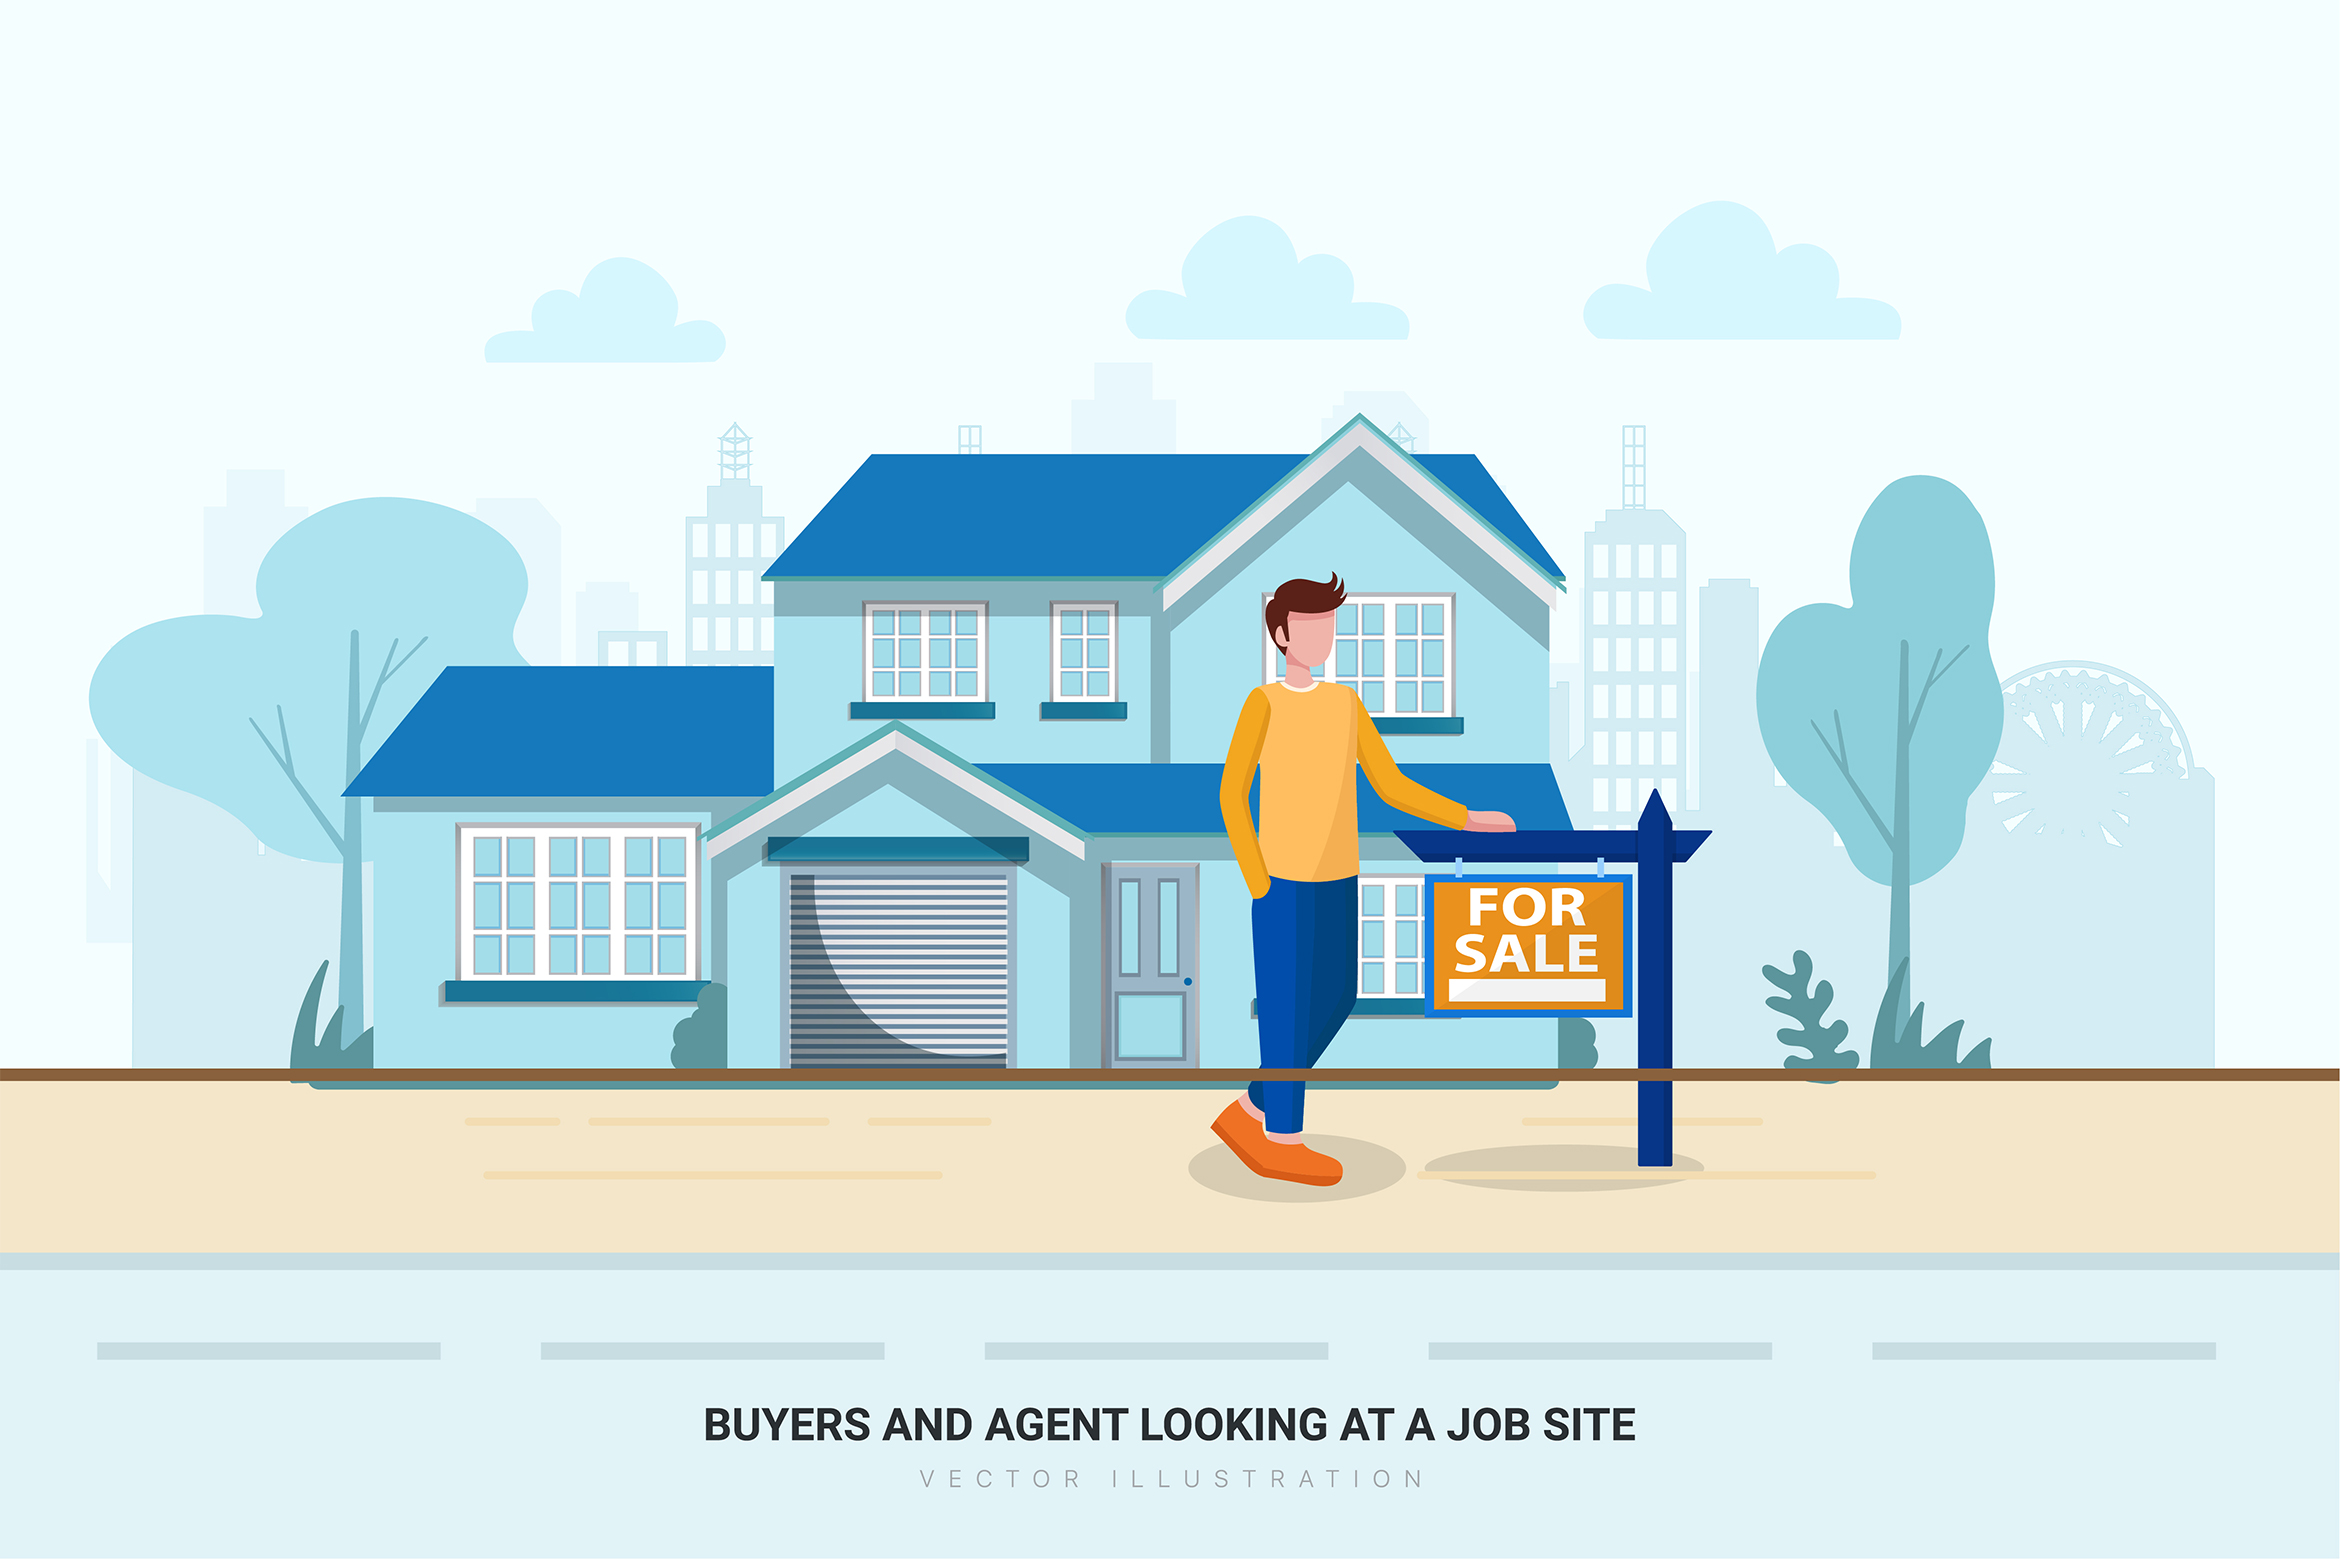 Construction & Real Estate Vector Illustration - Part 30 example image 7